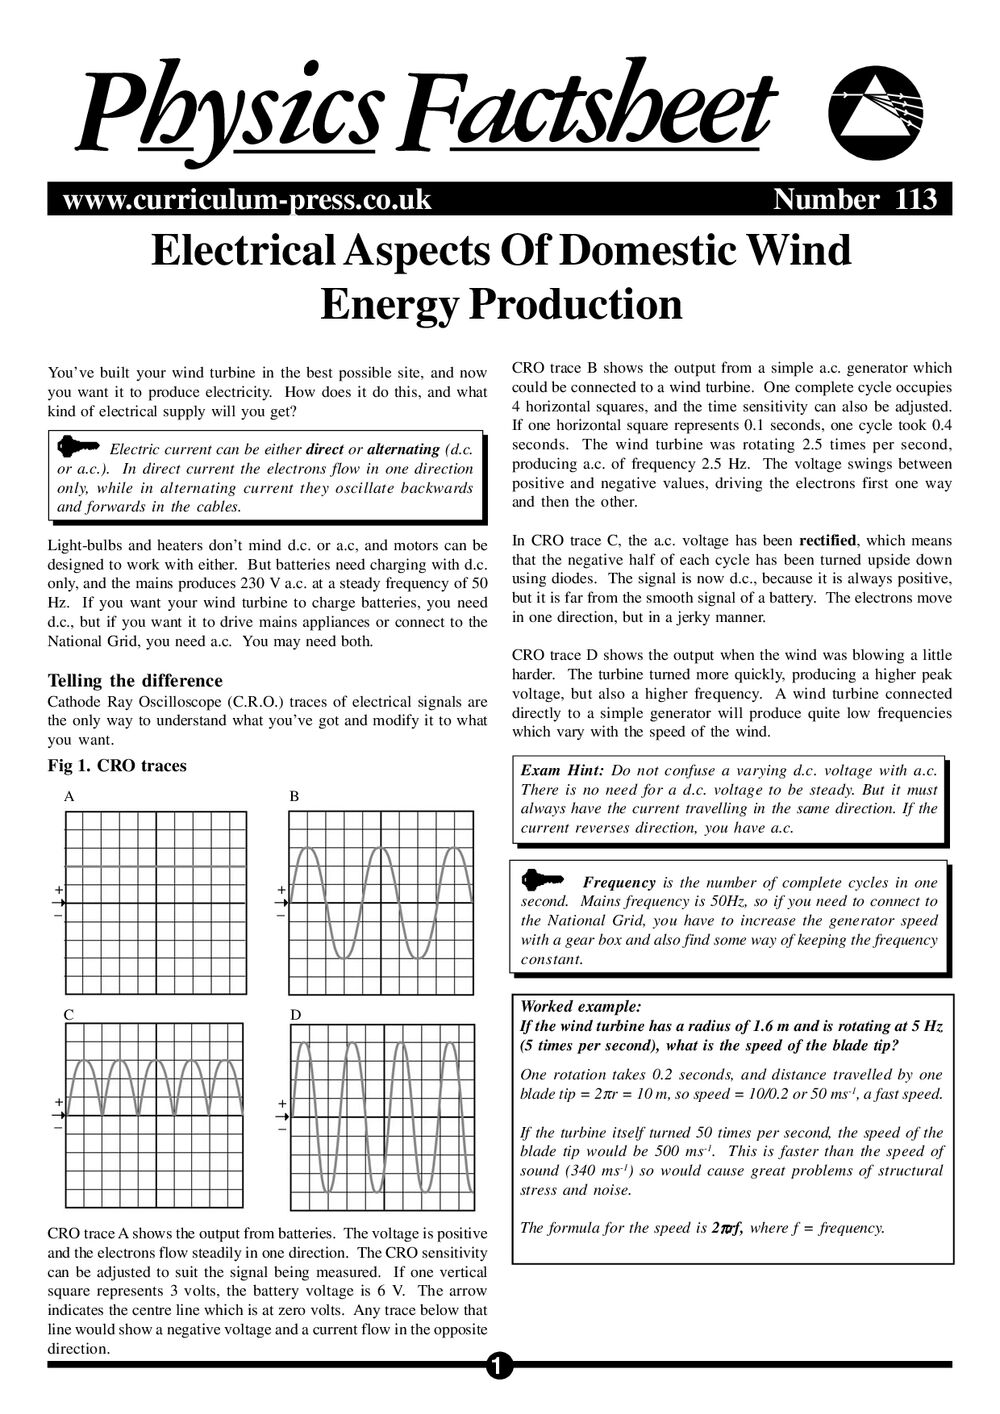 Electrical Aspects Of Domestic Wind Energy Production Curriculum Press Cro Cathode Ray Oscilloscope